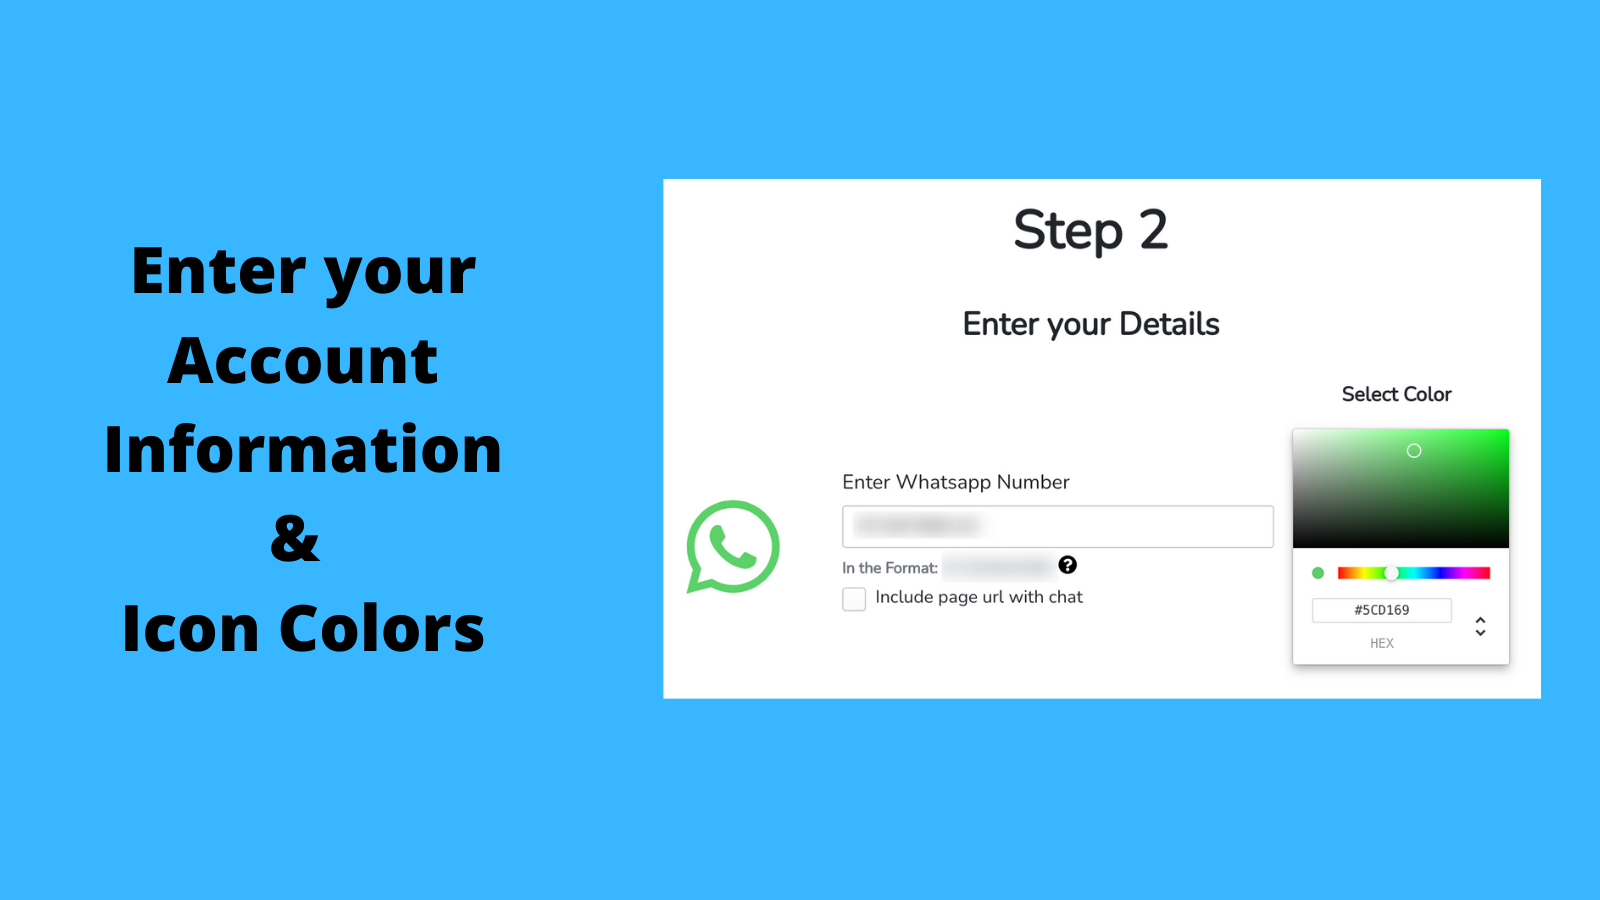 Enter your Account Information and Icon Colors